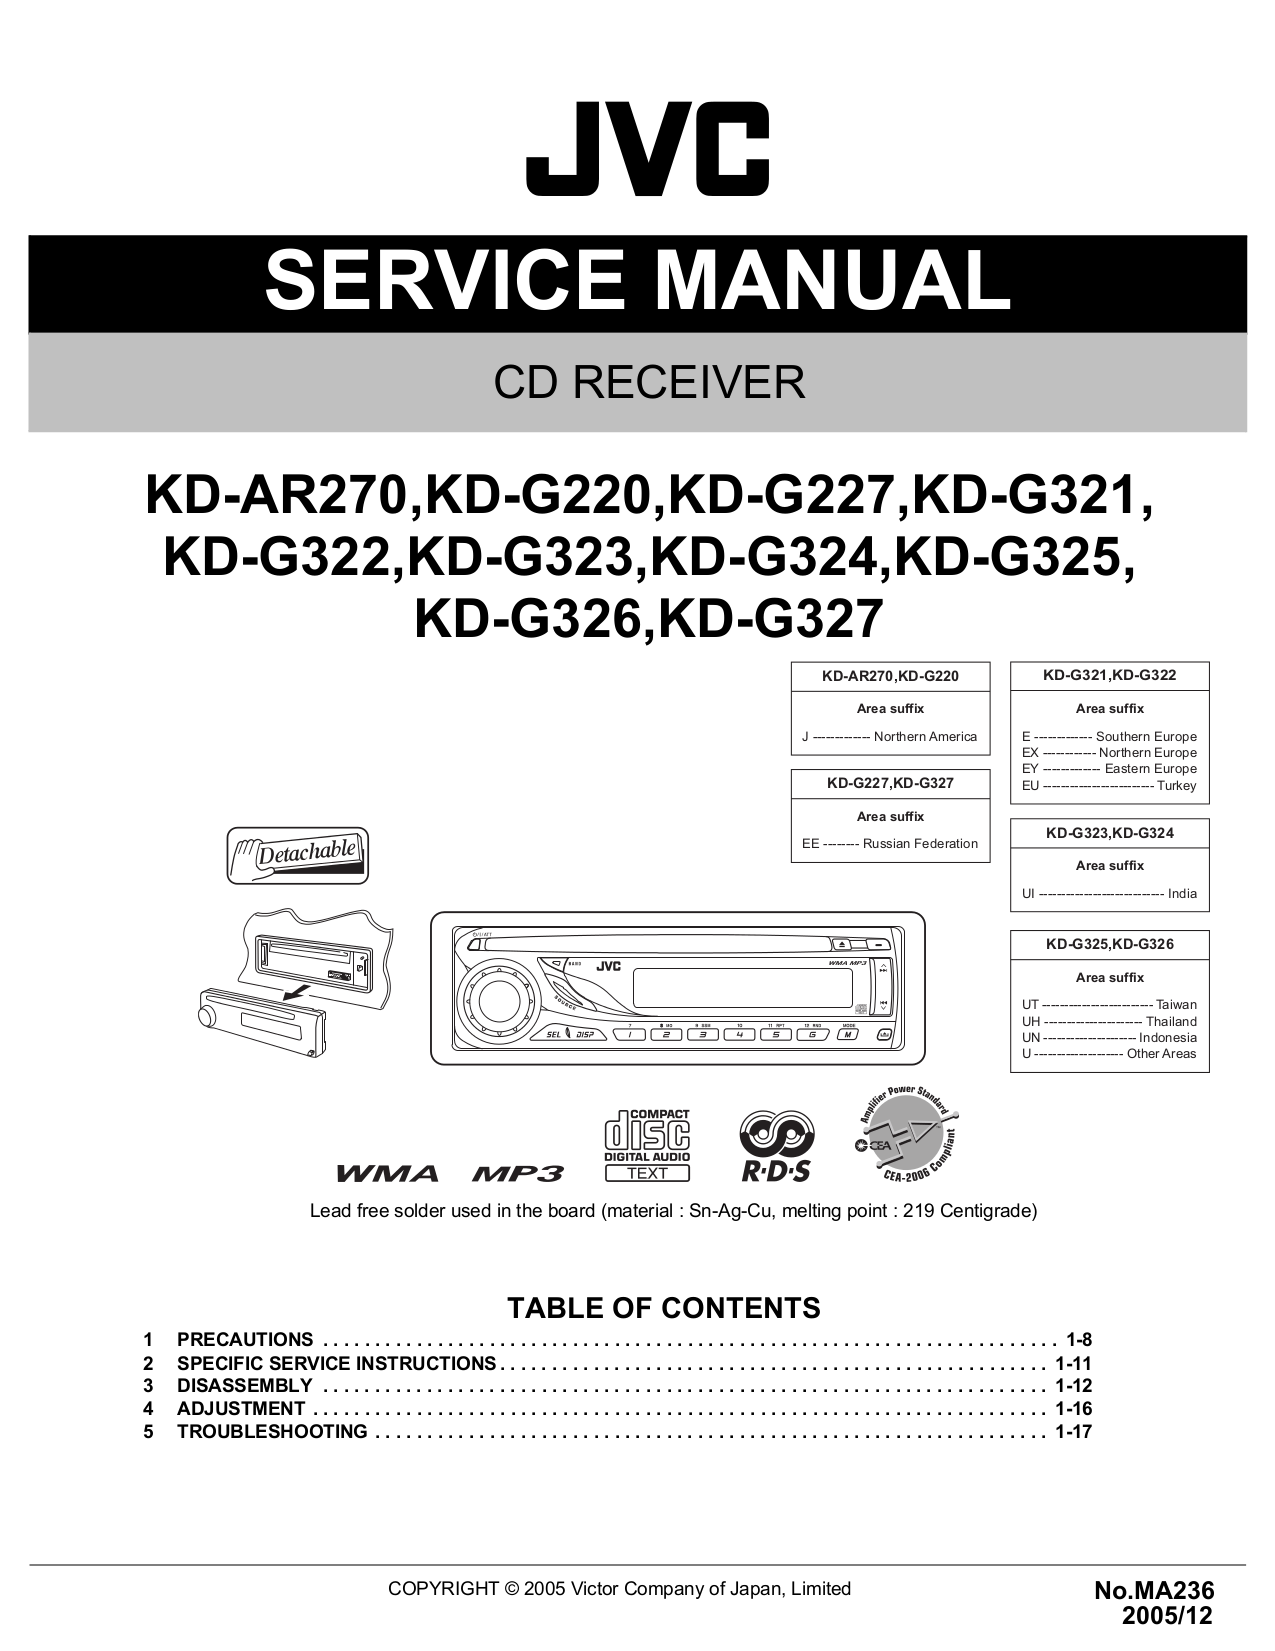 301398d1352582317 Magnitola Avtozvuk jvc kd ar270 kd g220 g227 g321 g322 g323 g324 g325 g326 g327.pdf 0 pdf manual for jvc car receiver kd s51 jvc kd r200 wiring diagram at panicattacktreatment.co